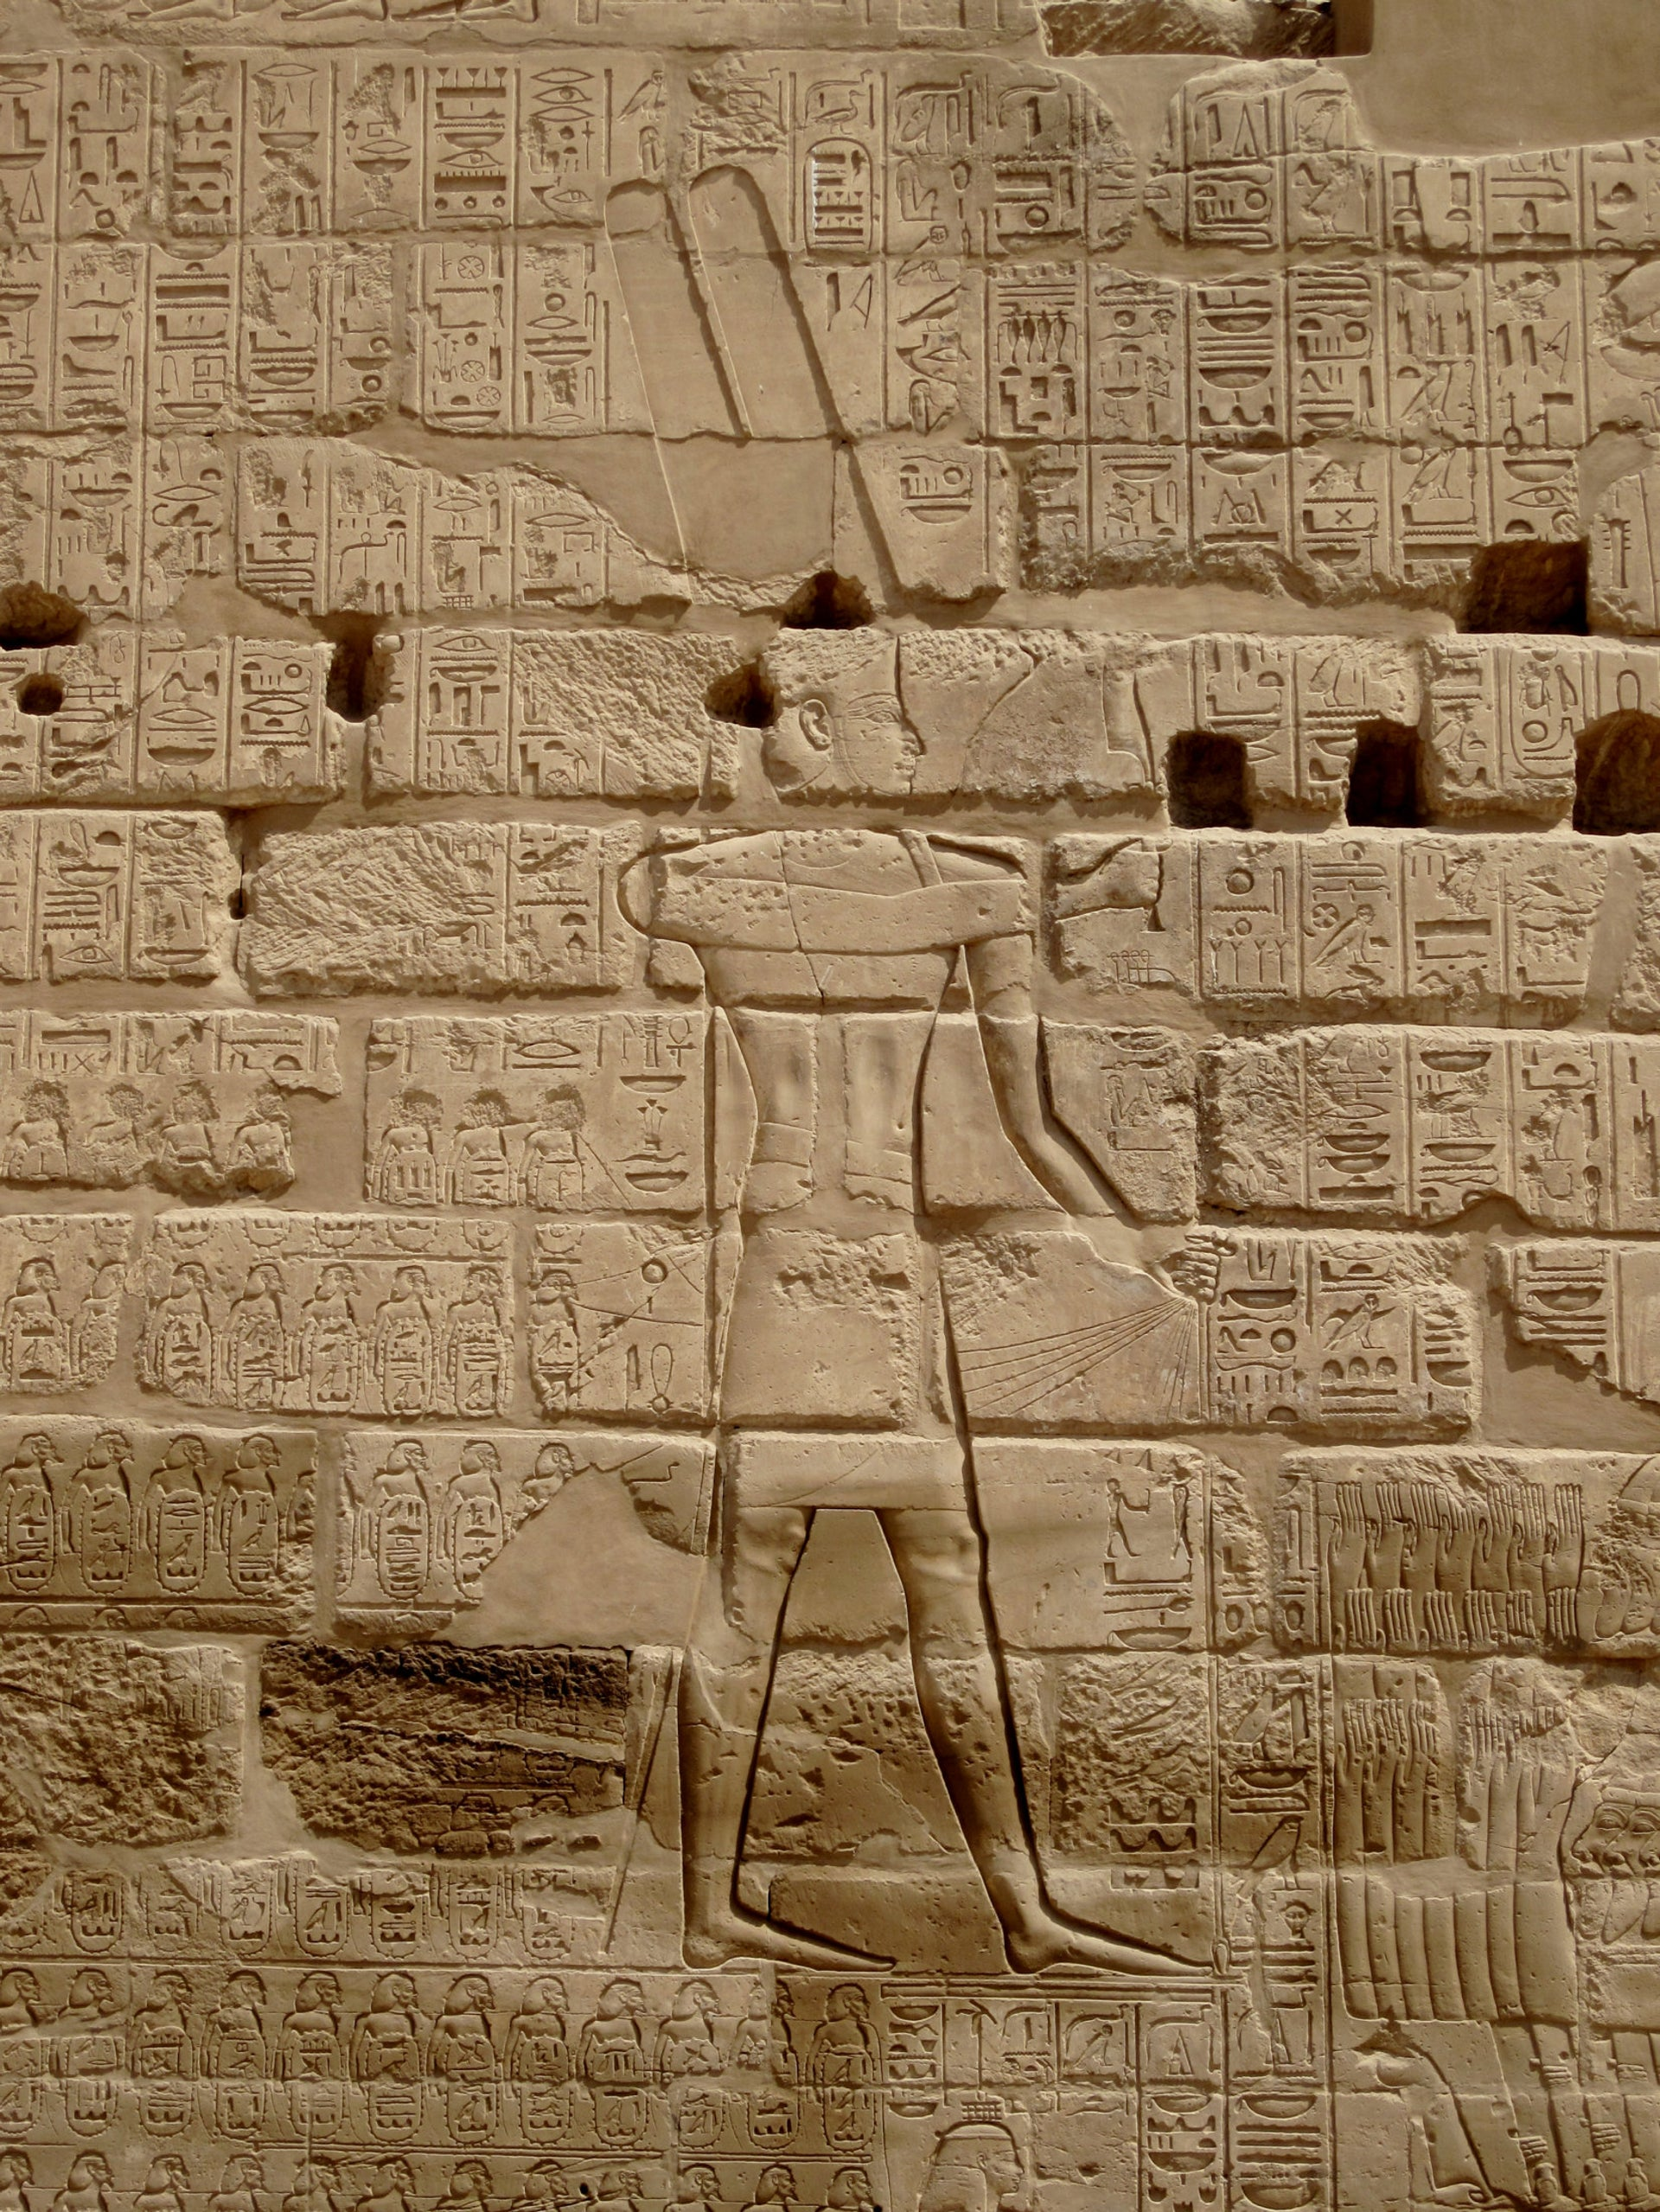 Sheshonq's triumphal inscription at Karnak, showing the god Amun surrounded by the list of cities captured by the pharaoh during his campaign